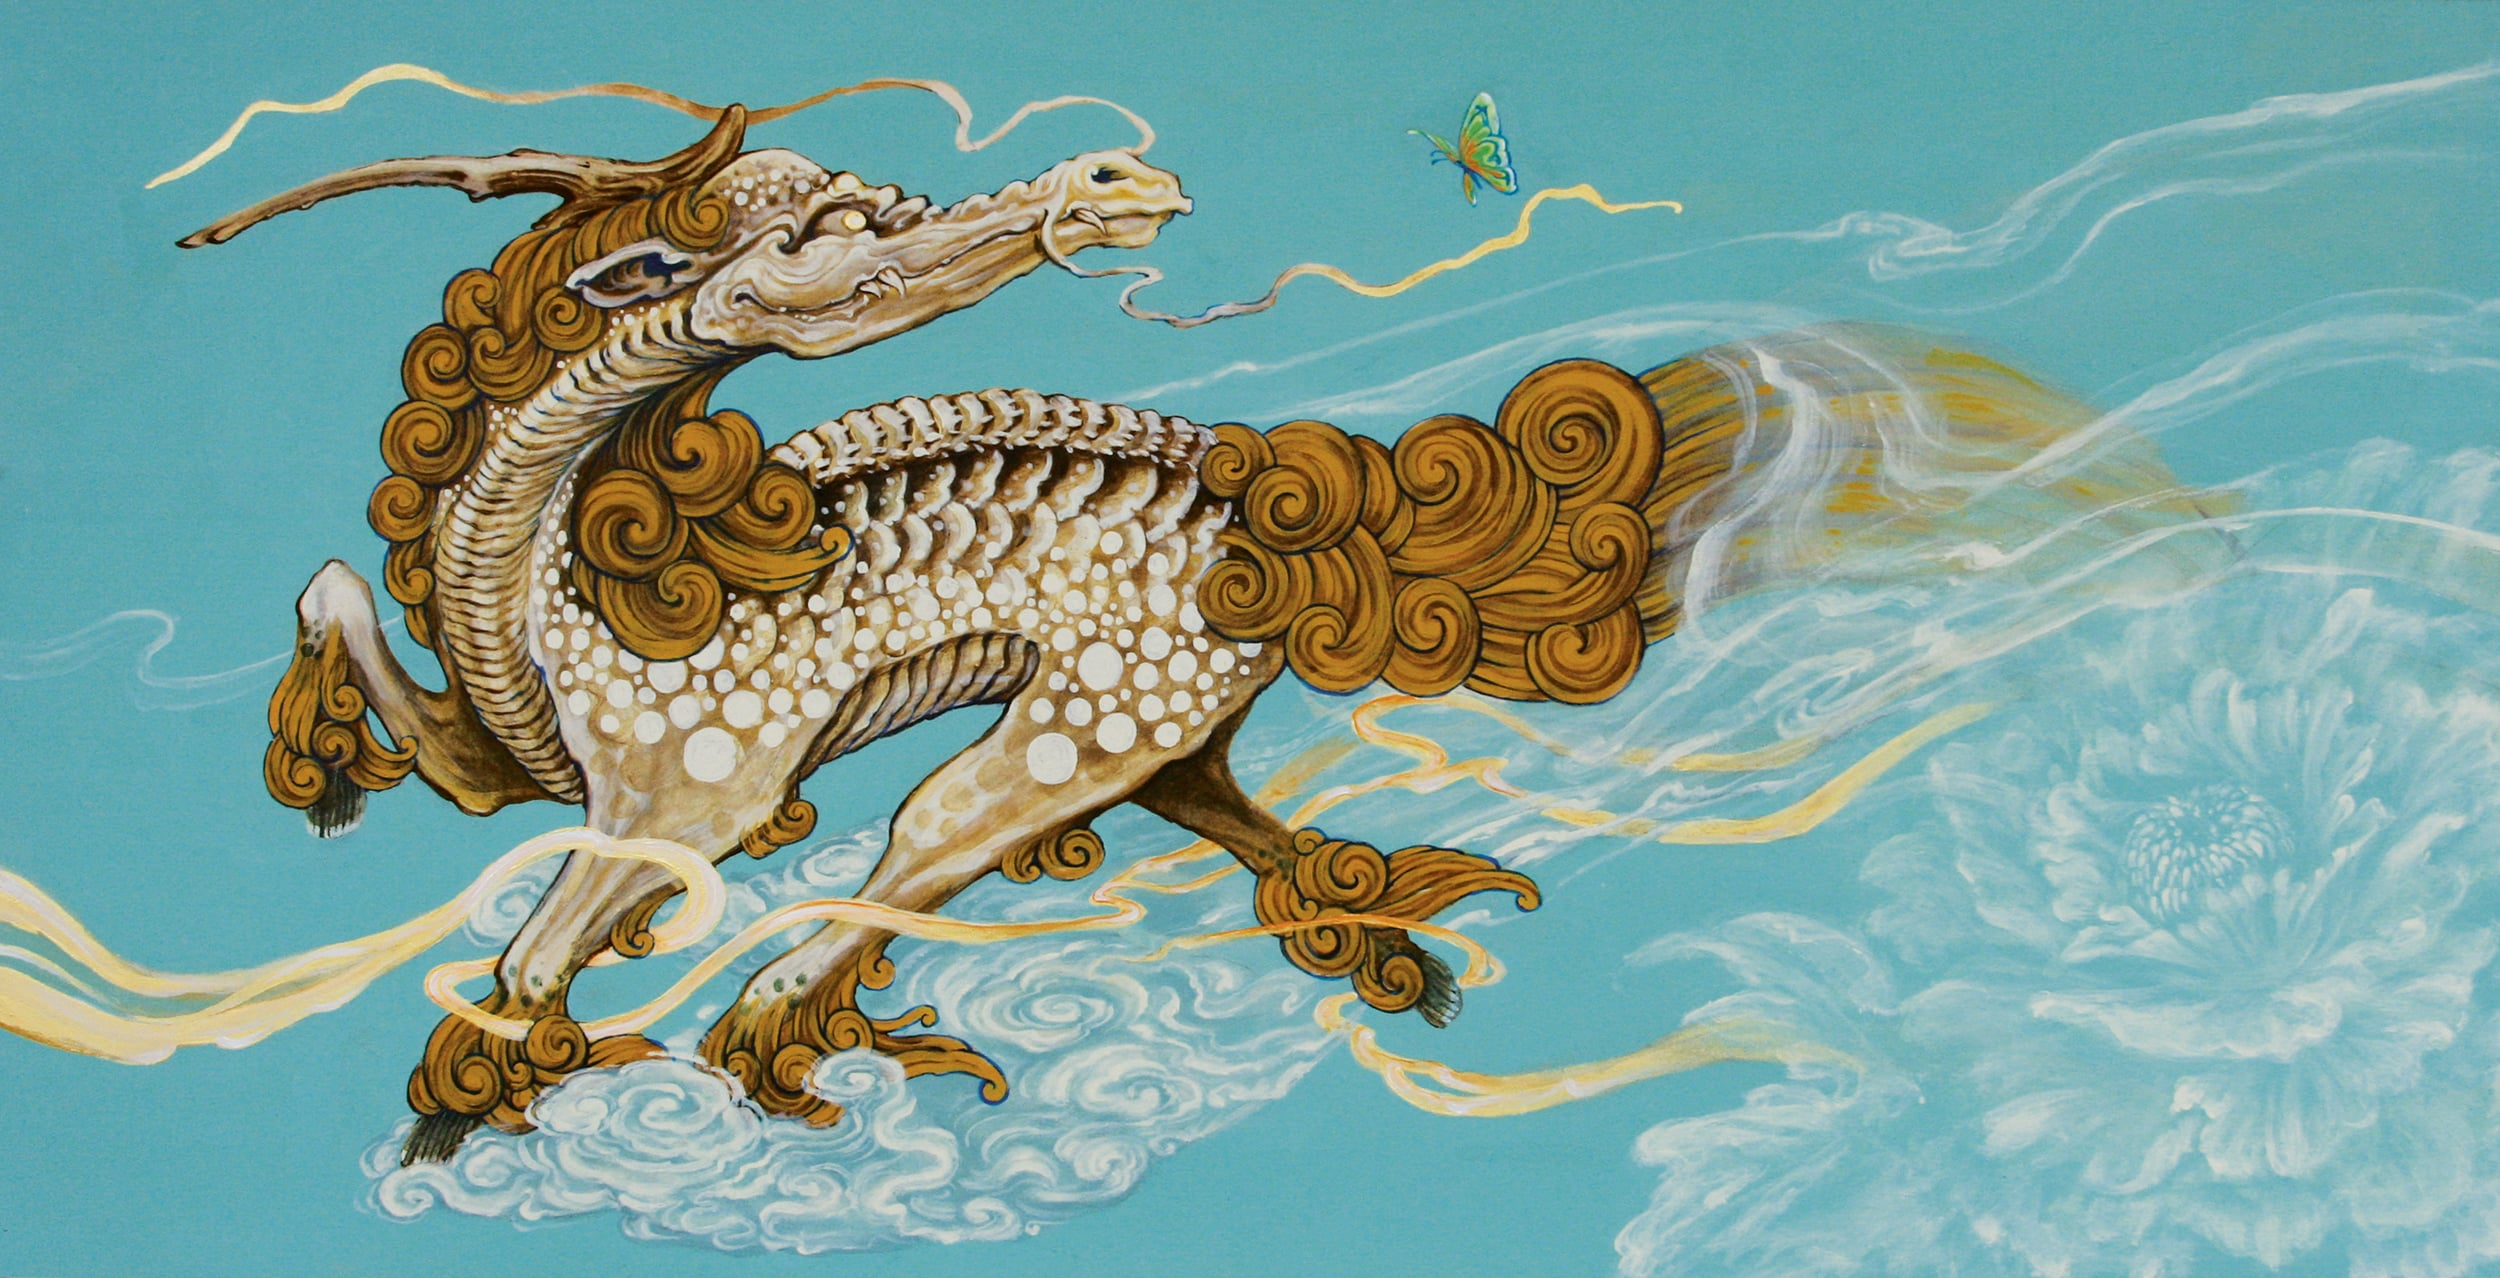 Untitled (Kirin with Peony & Butterfly) . 2009 - acrylic on board. 1' x 2'.